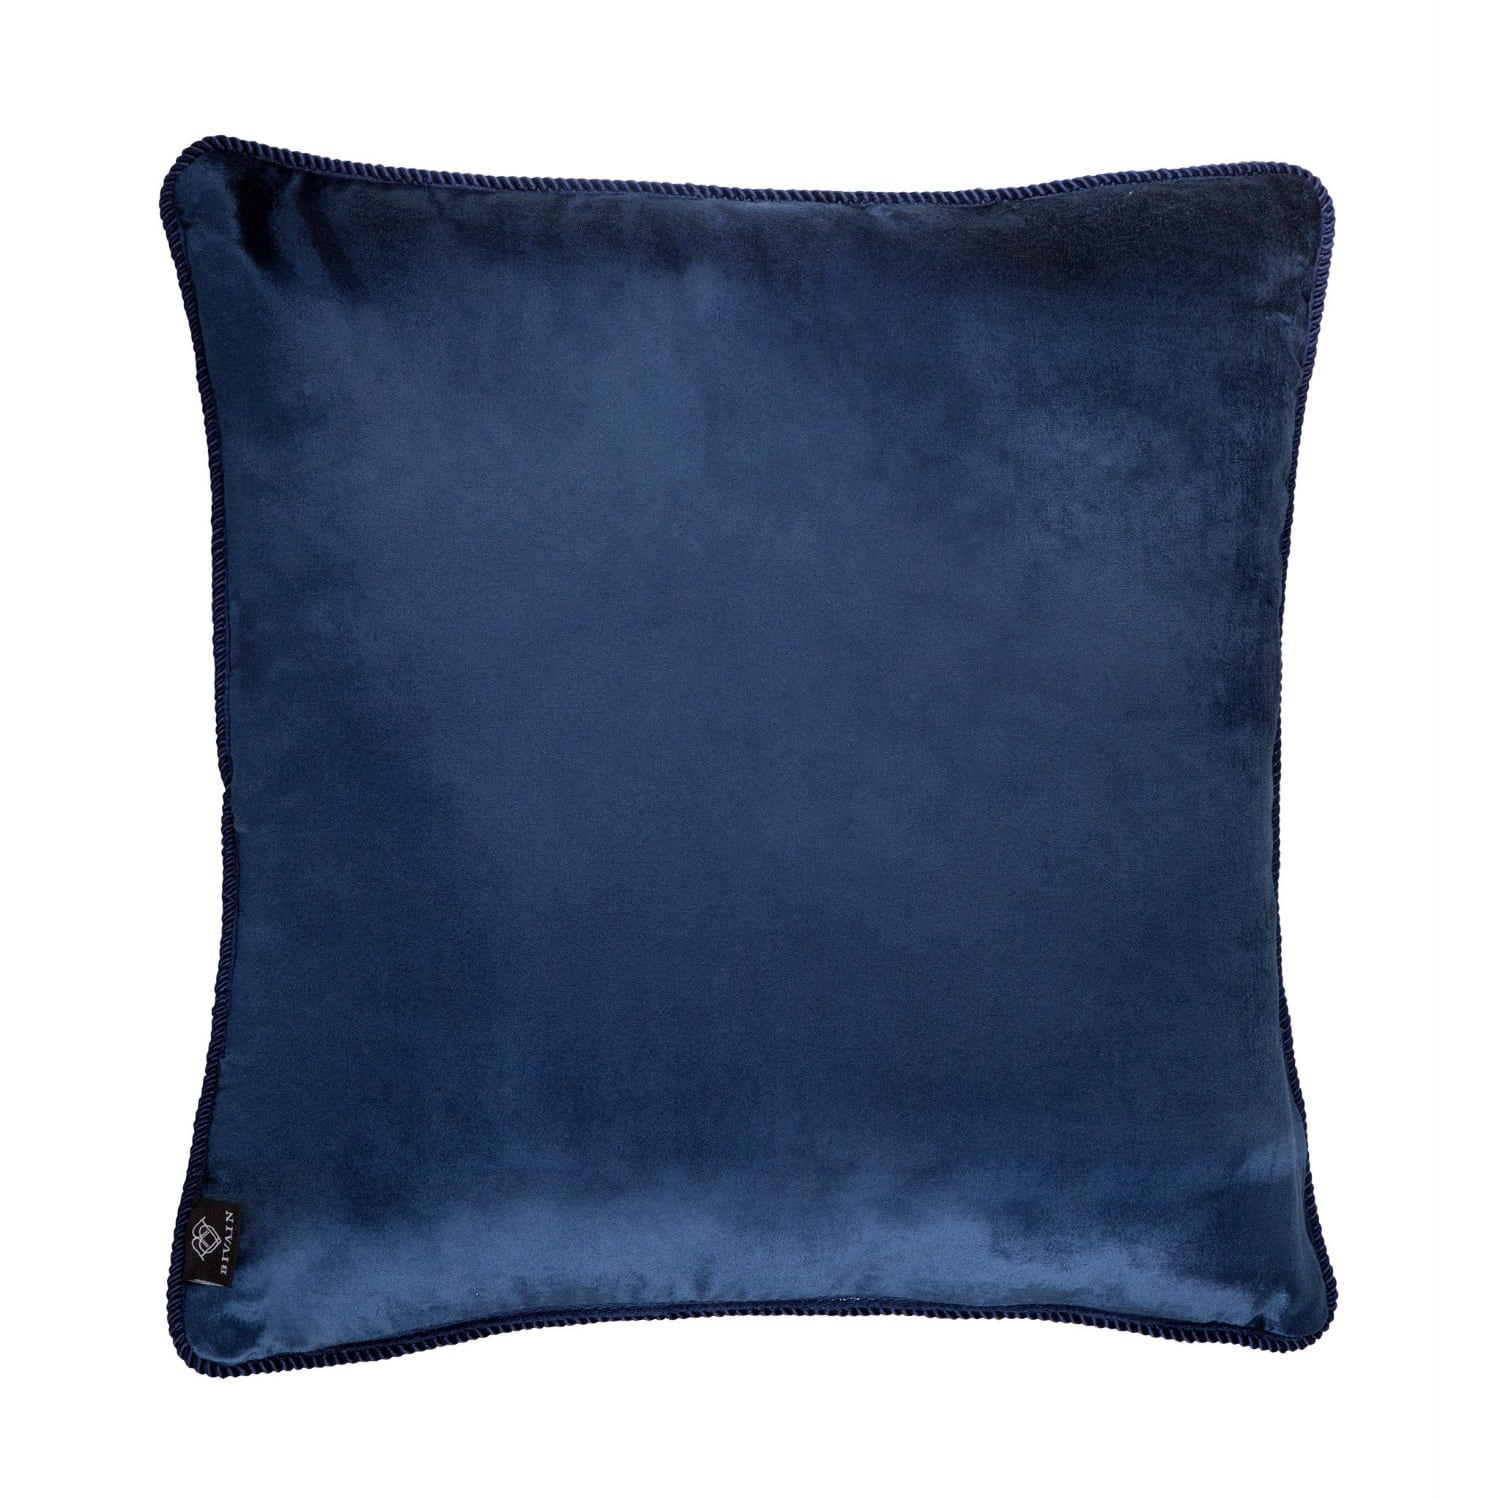 Blue Velvet Cushion Navy Blue Velvet Cushion Bivain Wolf And Badger